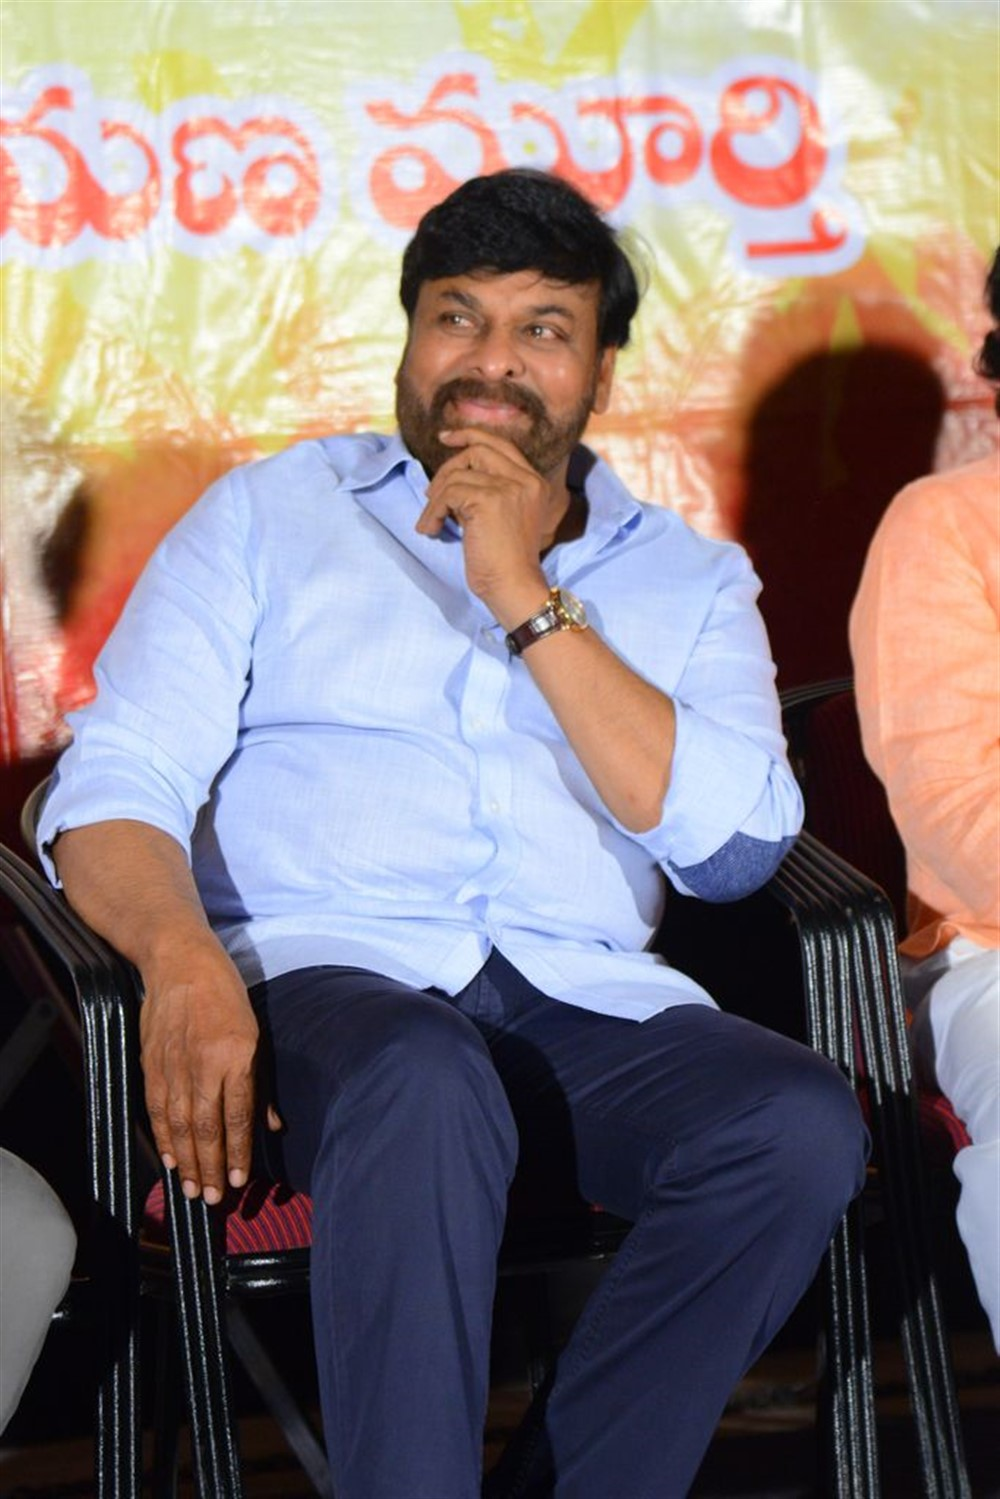 Chiranjeevi @ Marketlo Prajaswamyam Audio Launch Stills